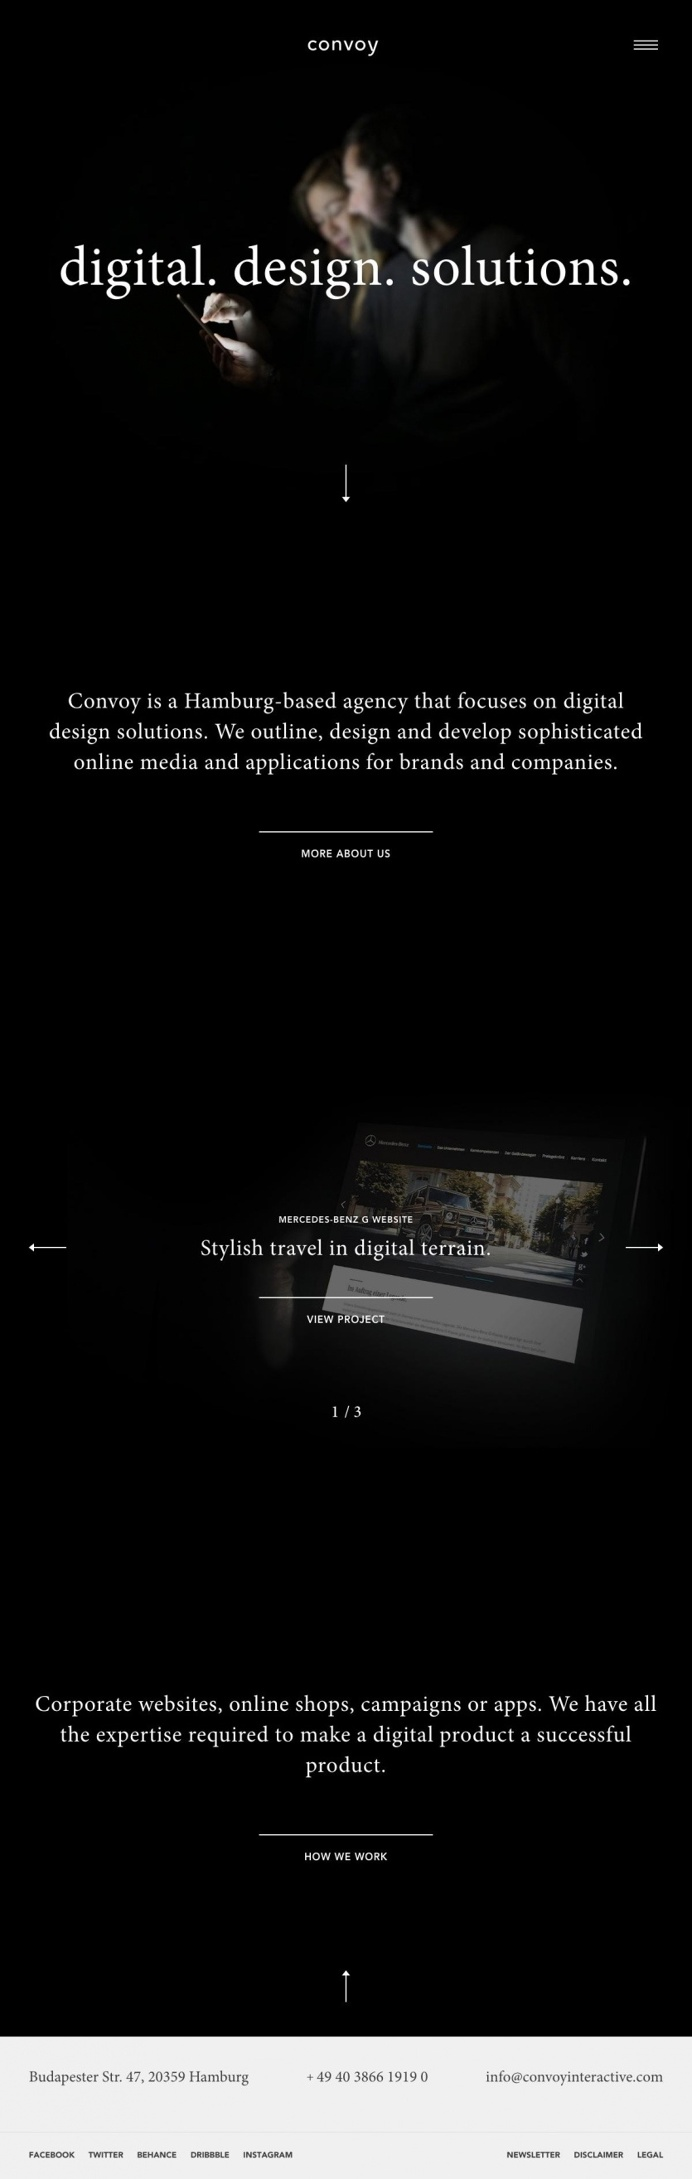 Convoy interactive digital design solutions studio germany modern black dark beautiful typography website webdesign award site of the day mi